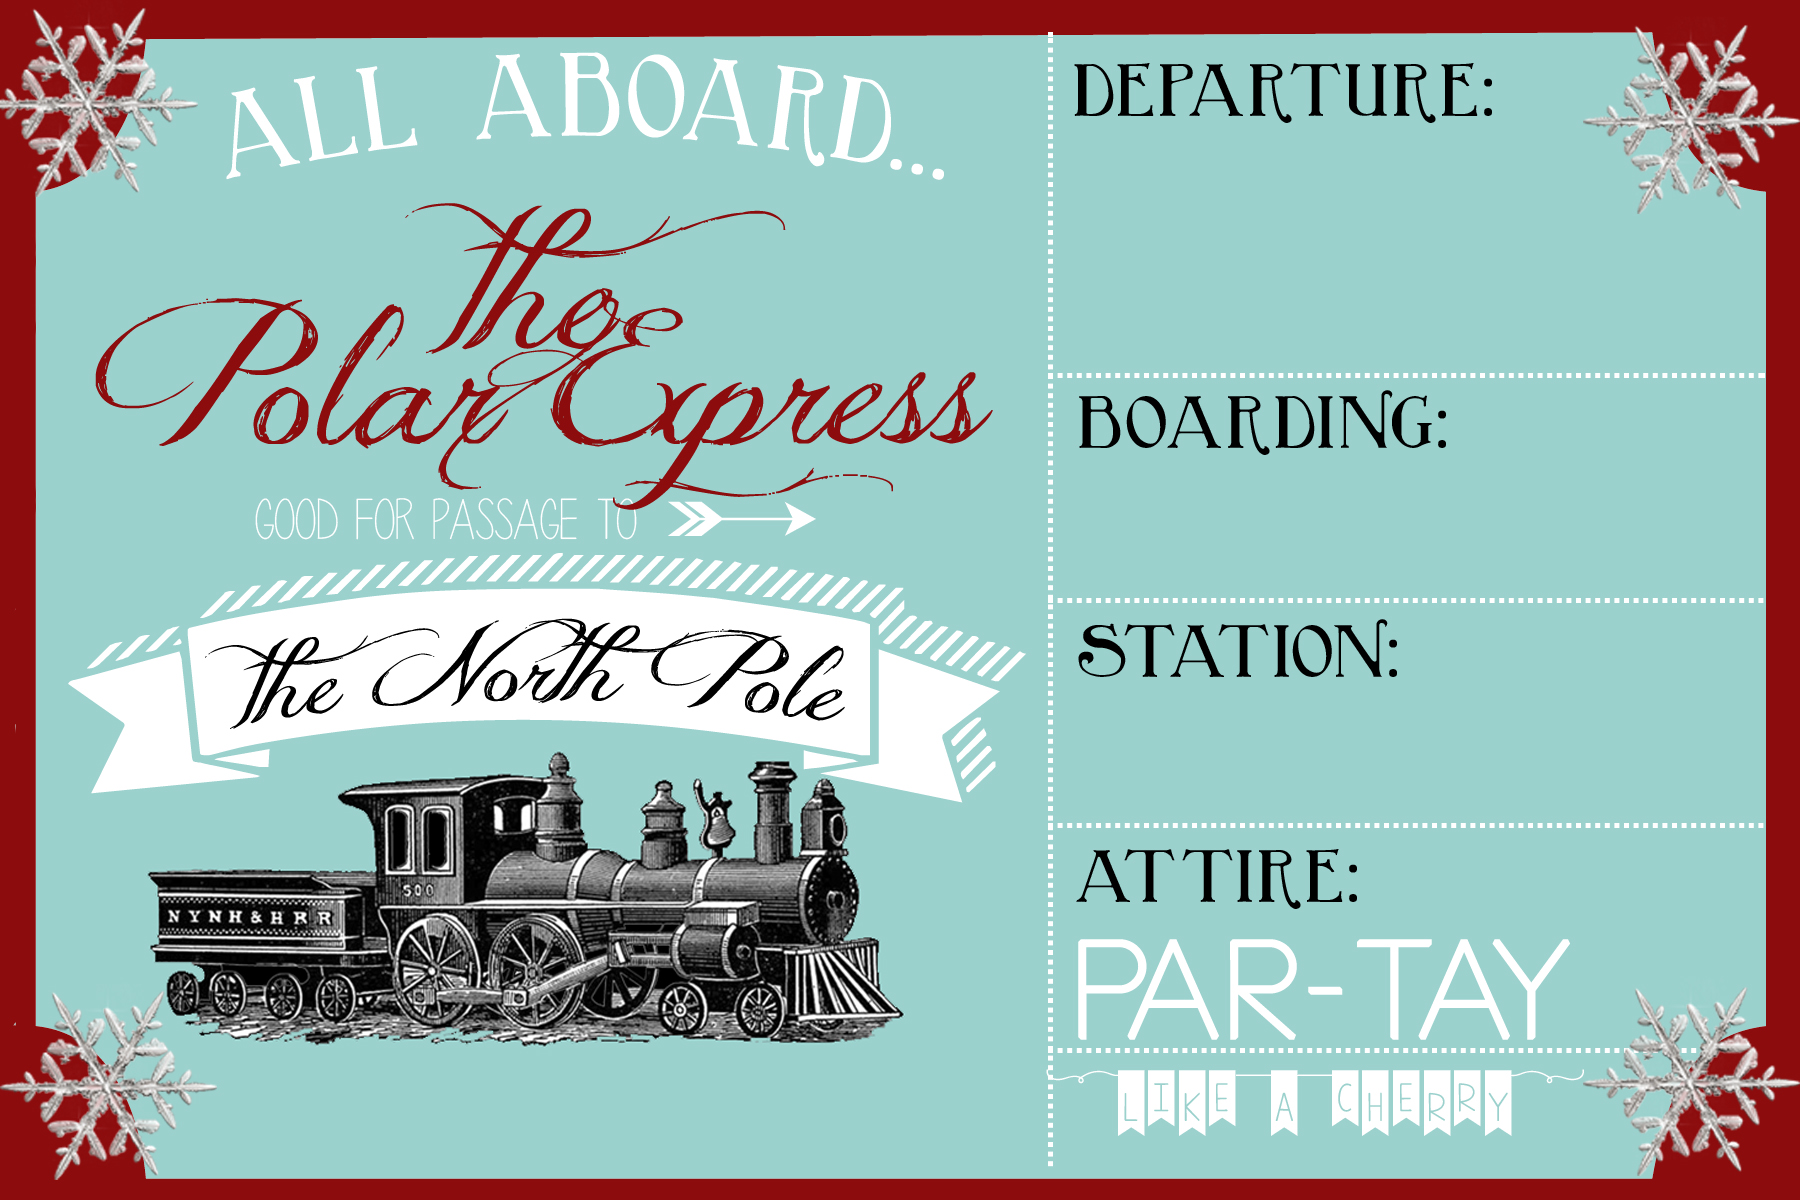 Polar Express Party Invitation Party Like A Cherry - Party invitation template: train party invitations templates